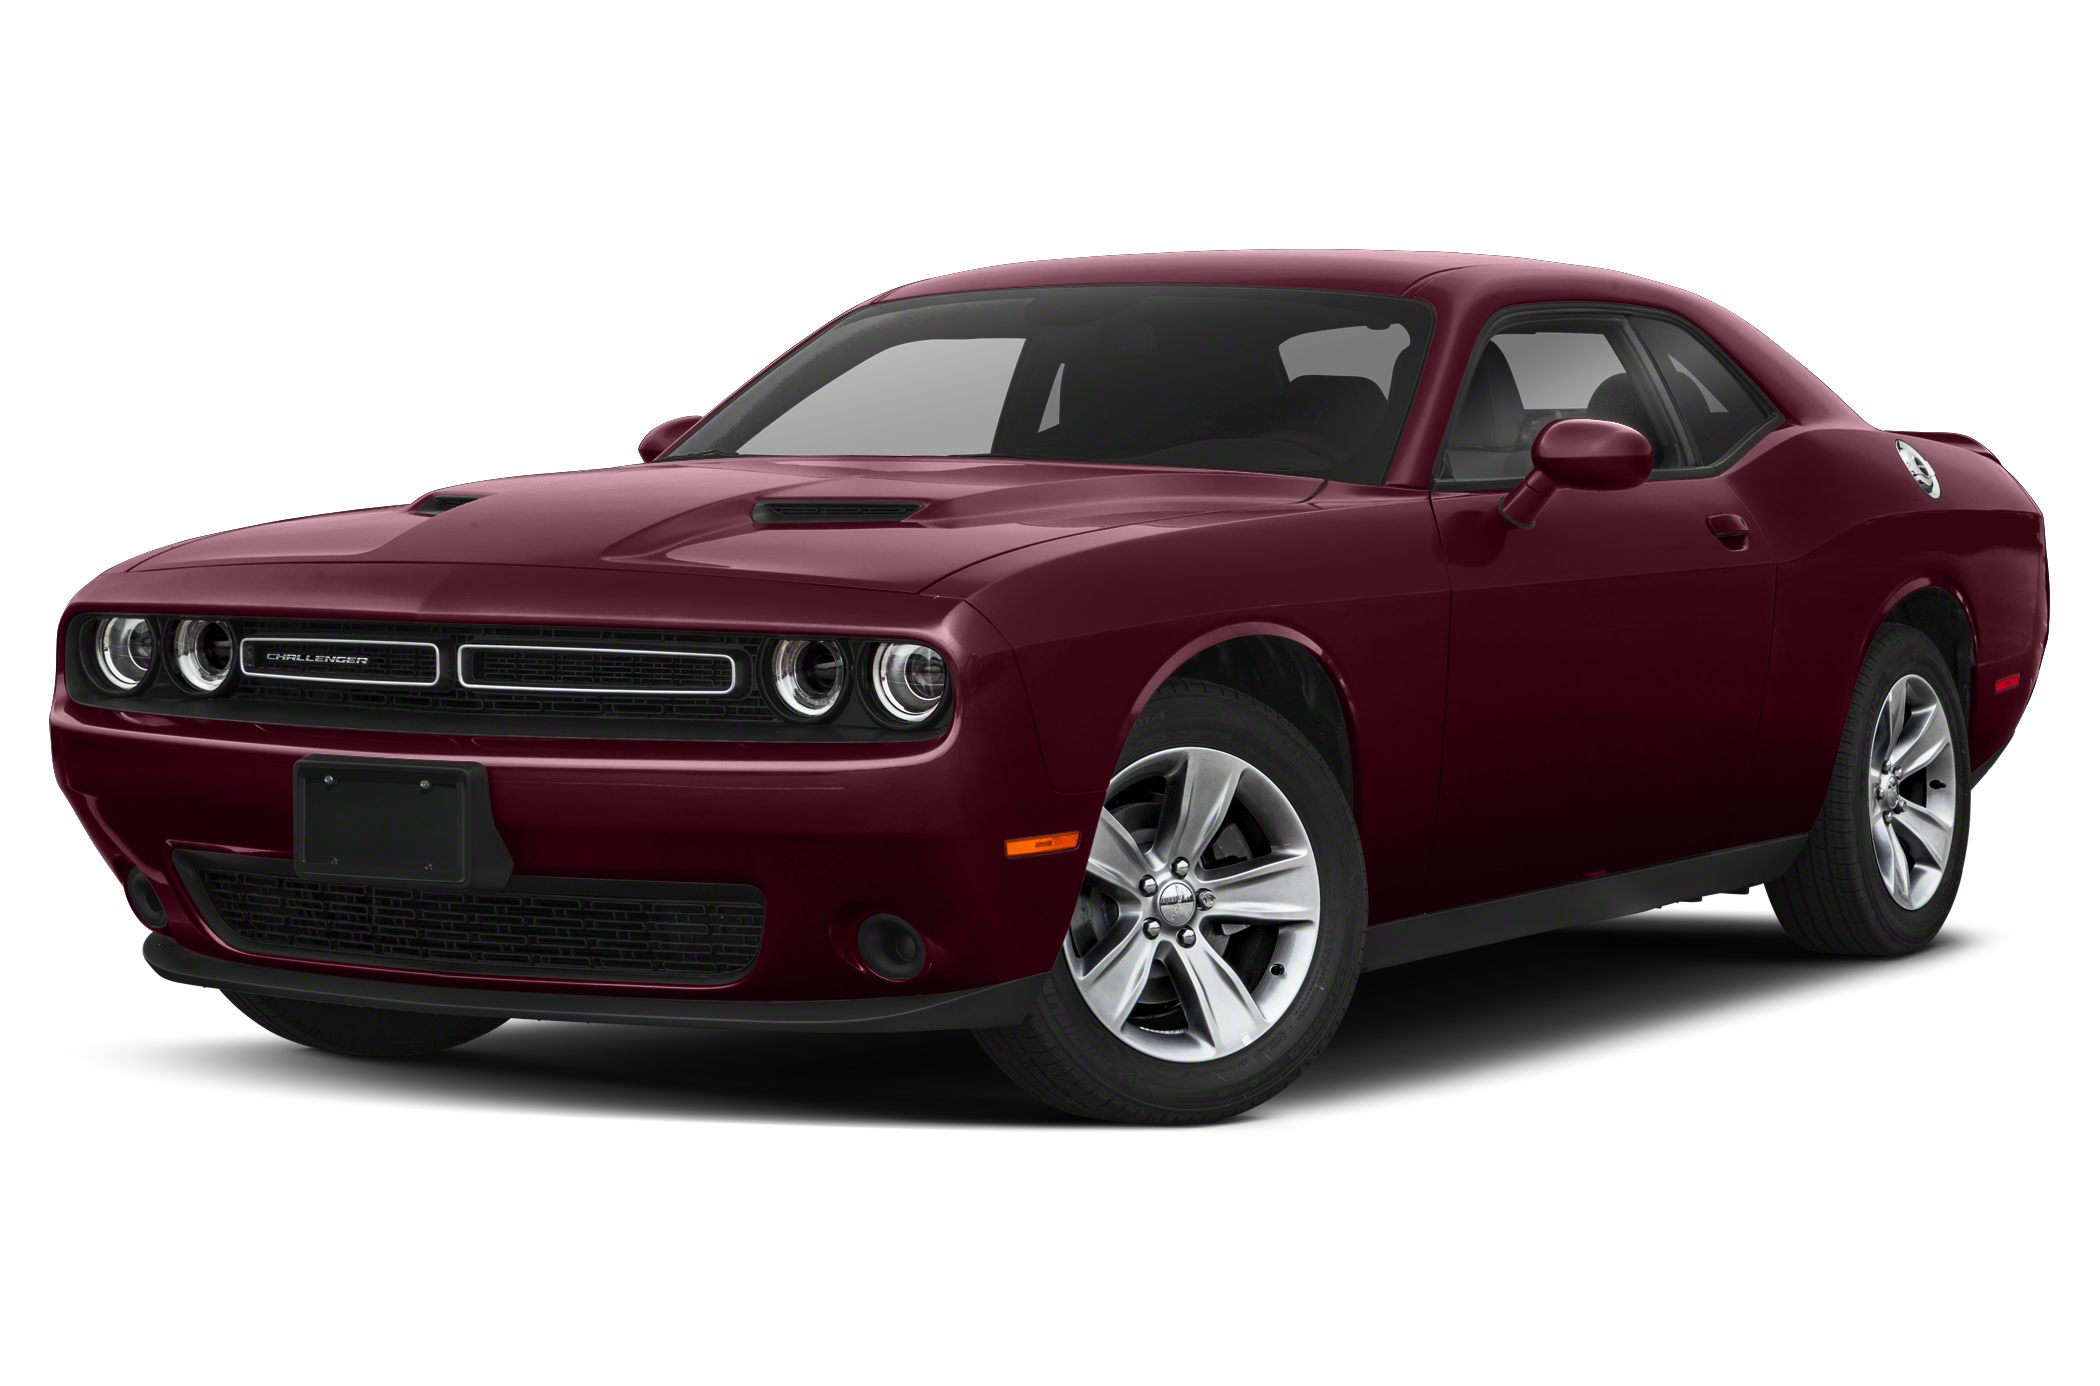 2019 Dodge Challenger GT 2dr Rear wheel Drive Coupe